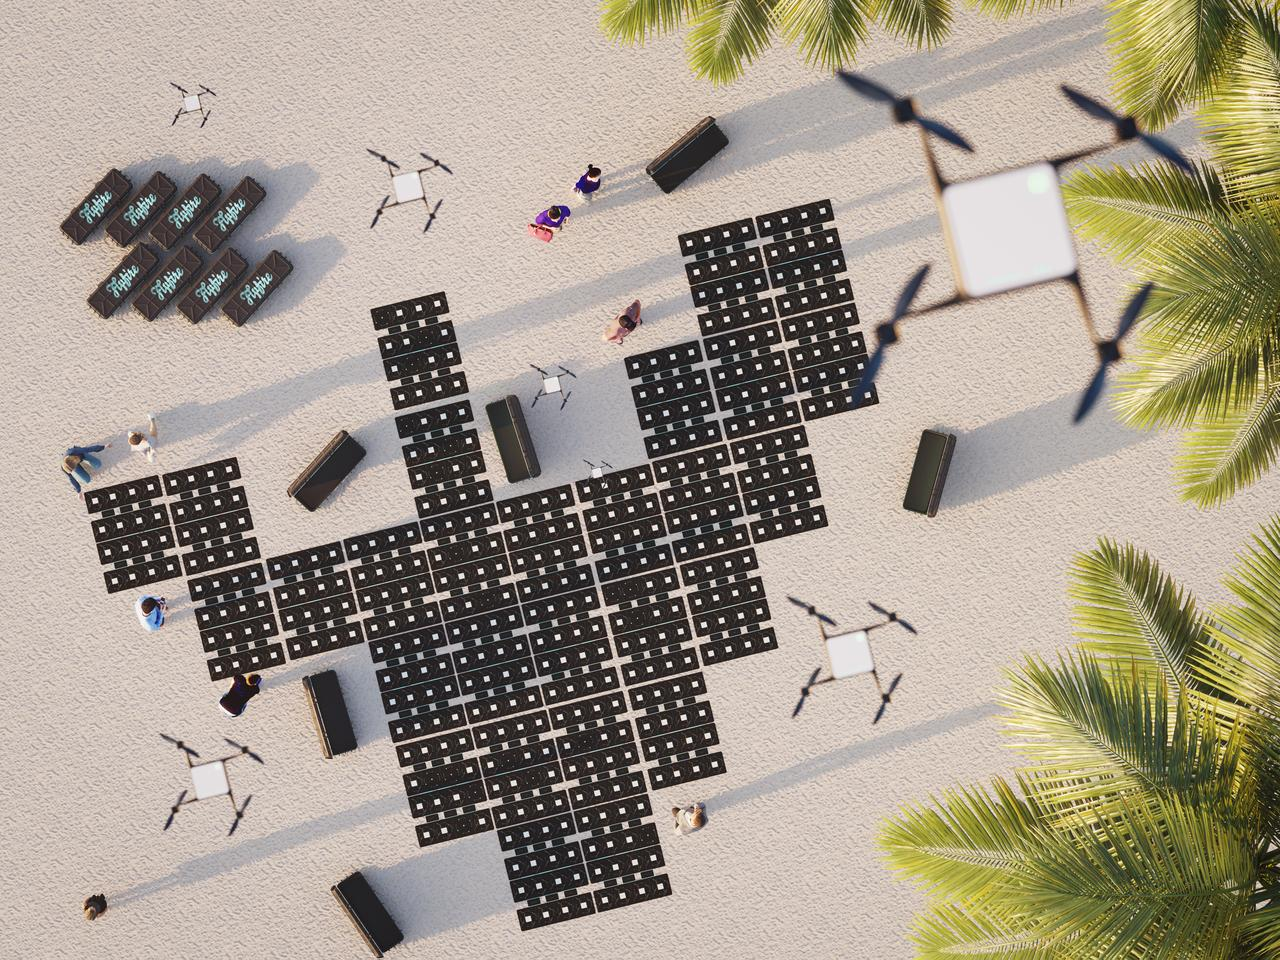 An overhead view of the Flying Drone Blanket